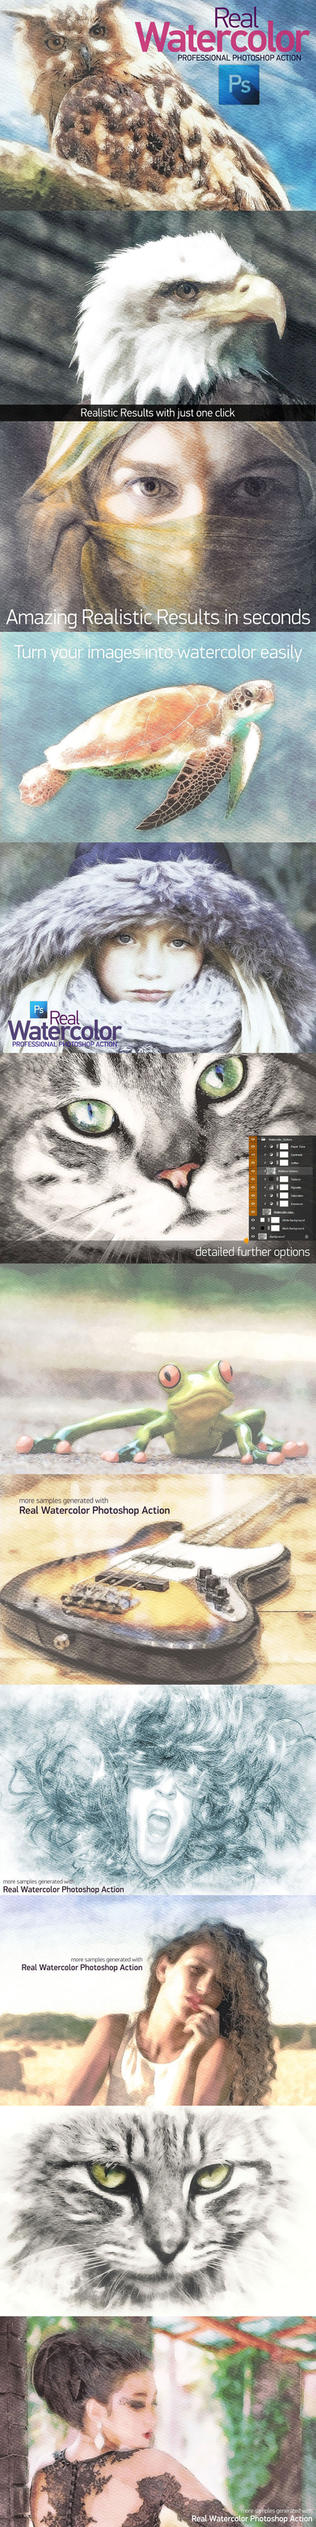 Real Watercolor Actions Preview by Grasycho